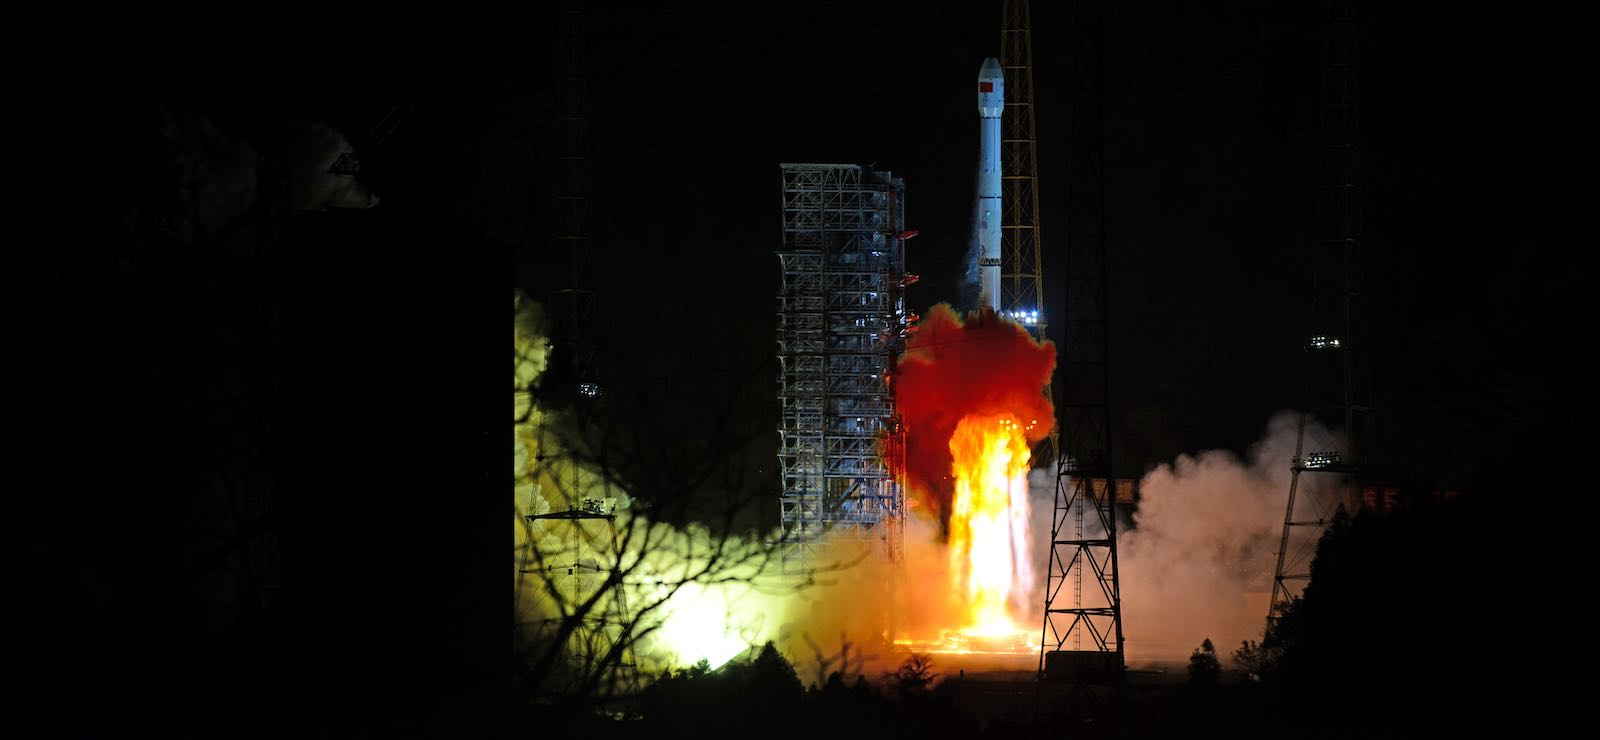 Long March-3B rocket carrying the Chang'e 4 lunar probe blasts off from the Xichang Satellite Launch Center on 8 December 2018 in Xichang, China (Photo: VCG via Getty)